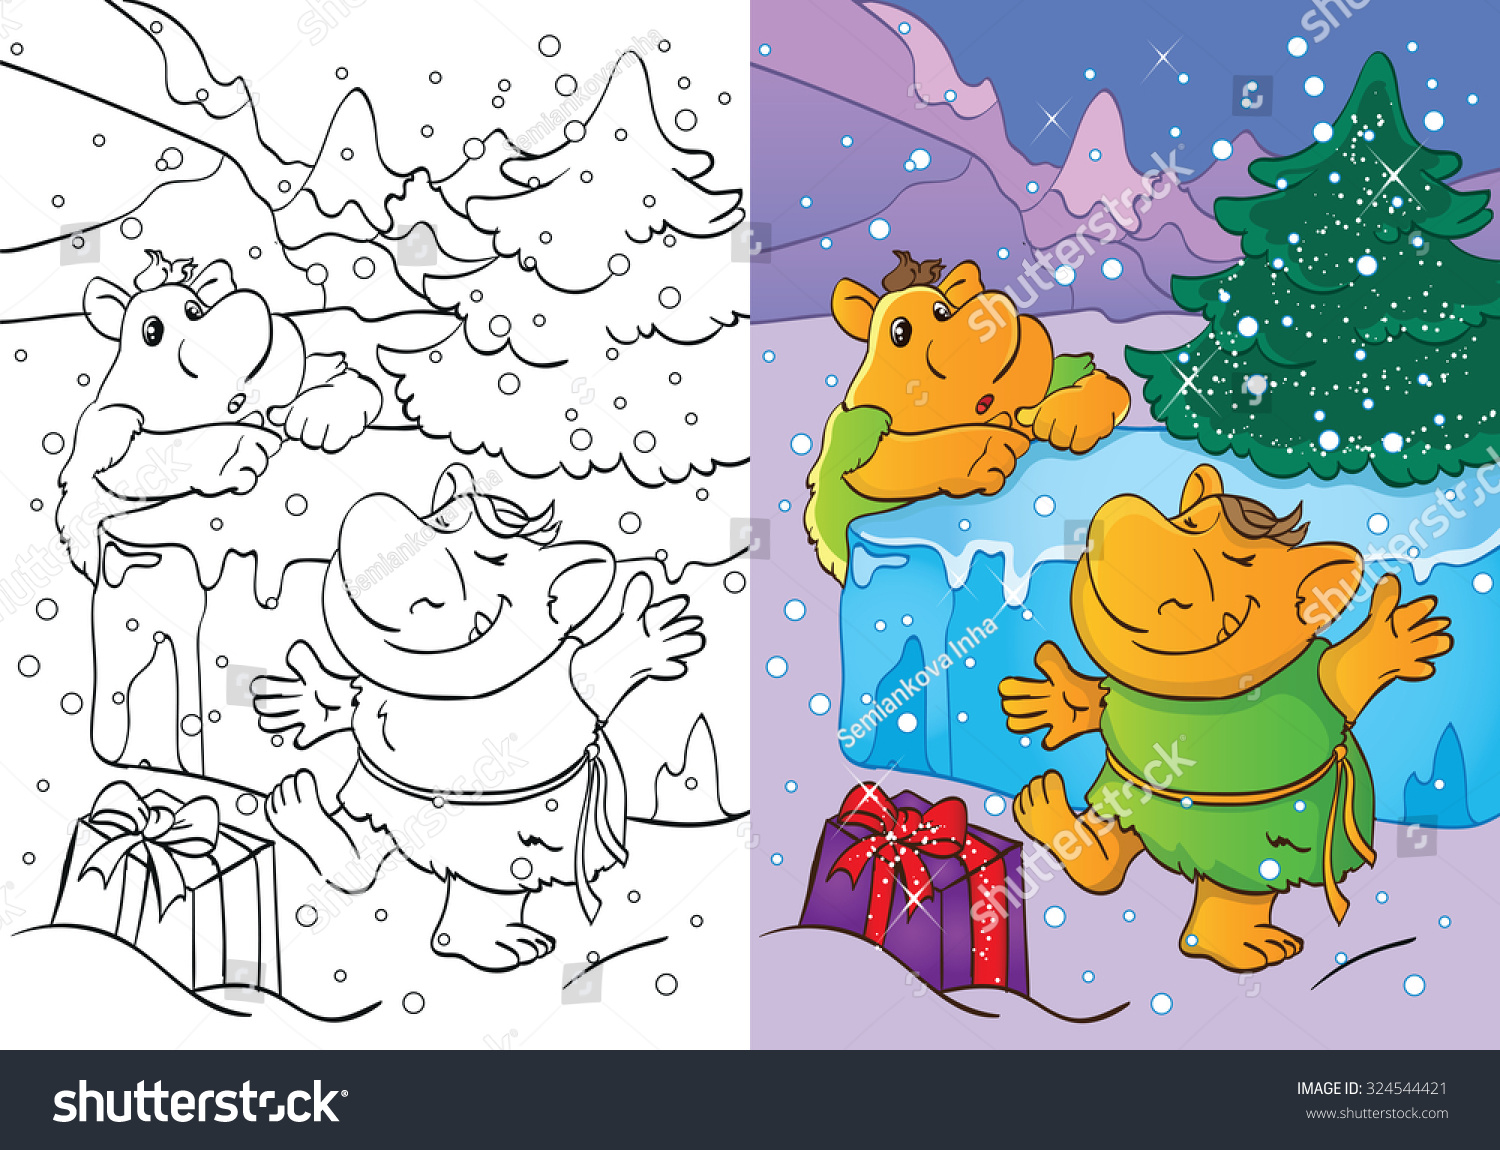 Coloring Book Cartoon Christmas Illustration Funny Stock Vector 324544421